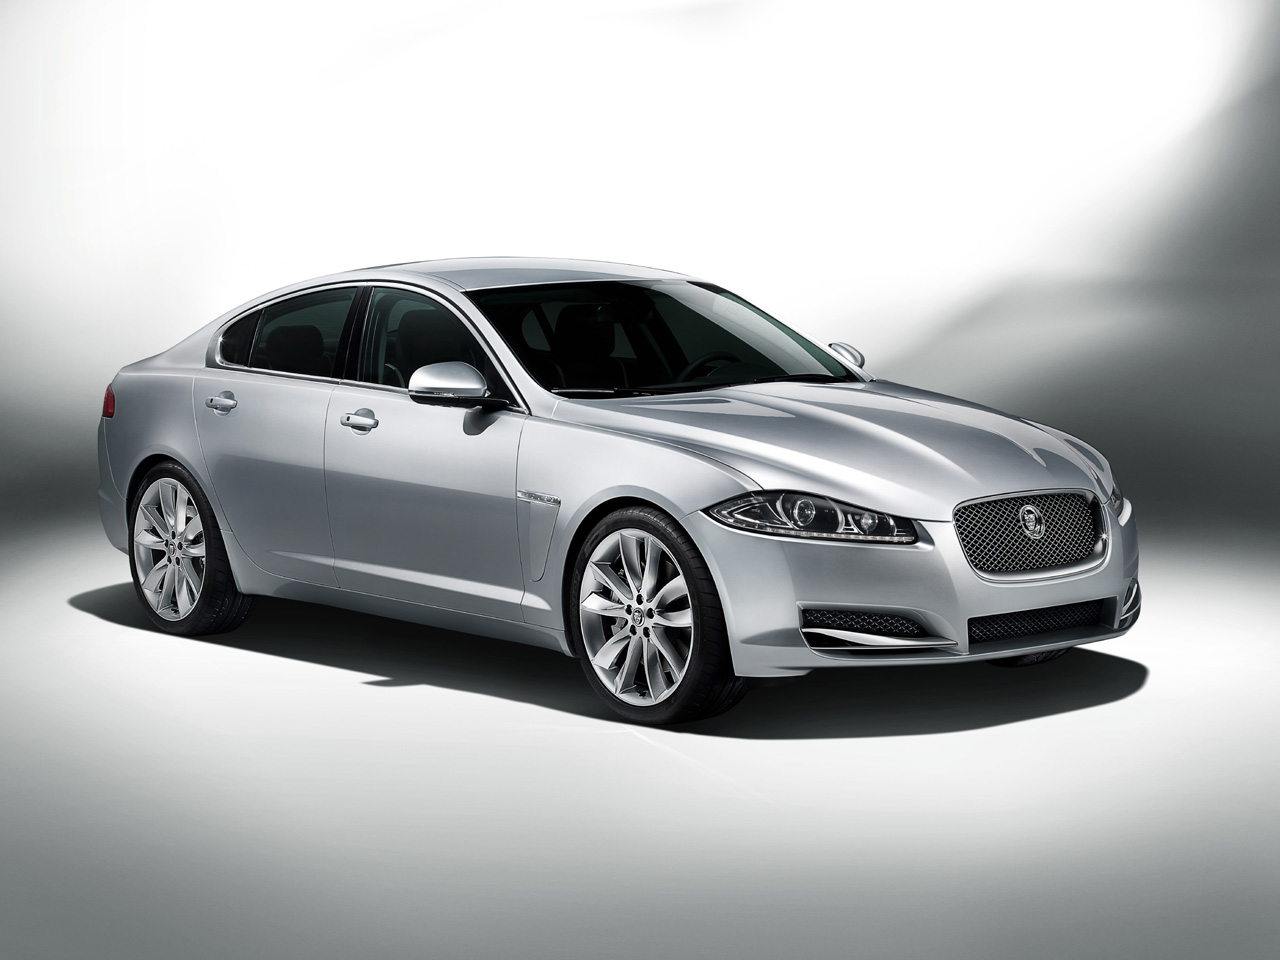 99 Wallpapers 2012 Jaguar Xf